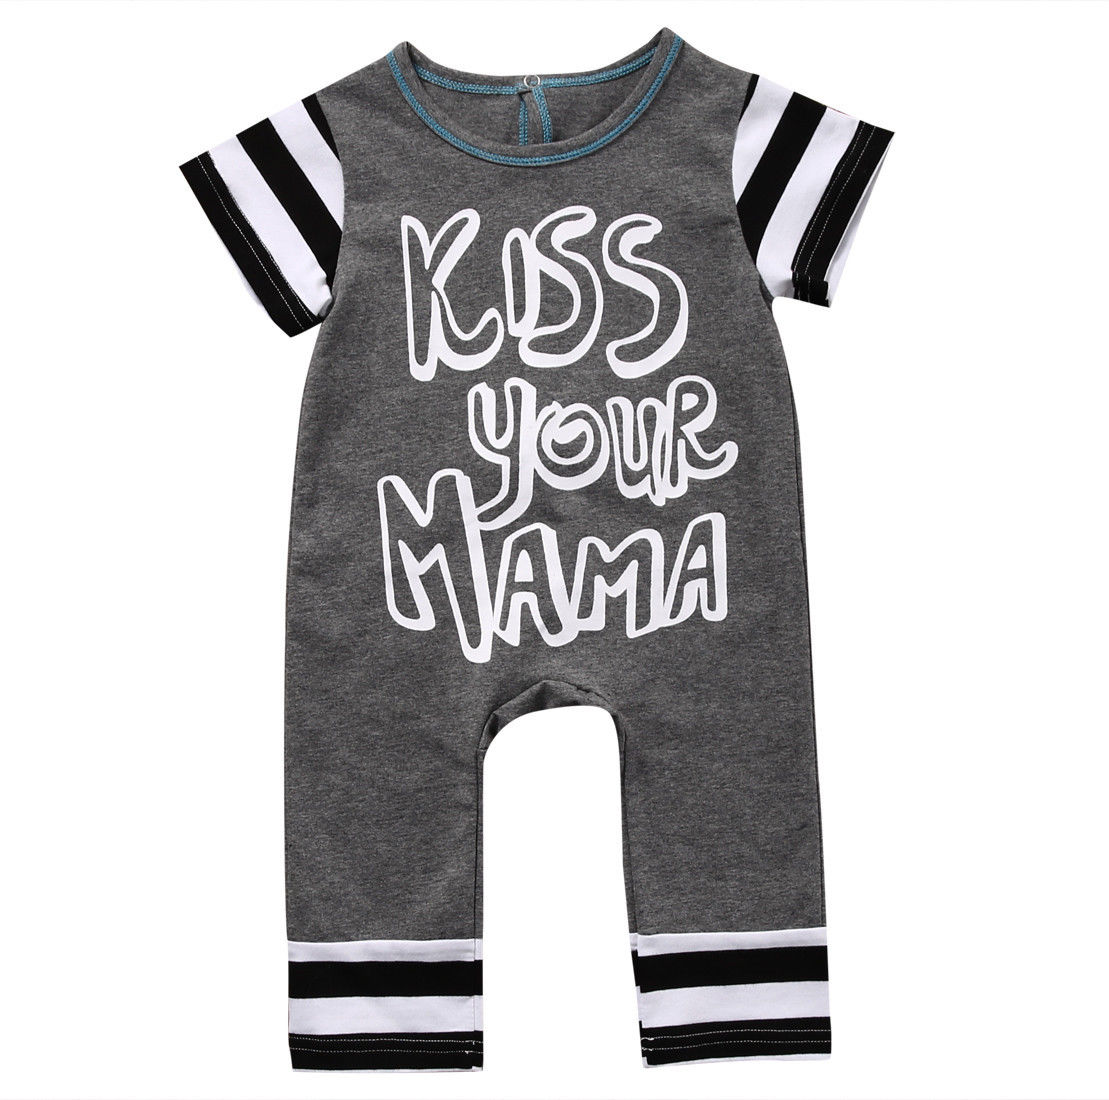 Newborn Baby Boys Clothes 2017 Summer Short Sleeve Cotton Romper Letters Print Baby Boys Rompers Baby One-piece Outfits cotton i must go print newborn infant baby boys clothes summer short sleeve rompers jumpsuit baby romper clothing outfits set